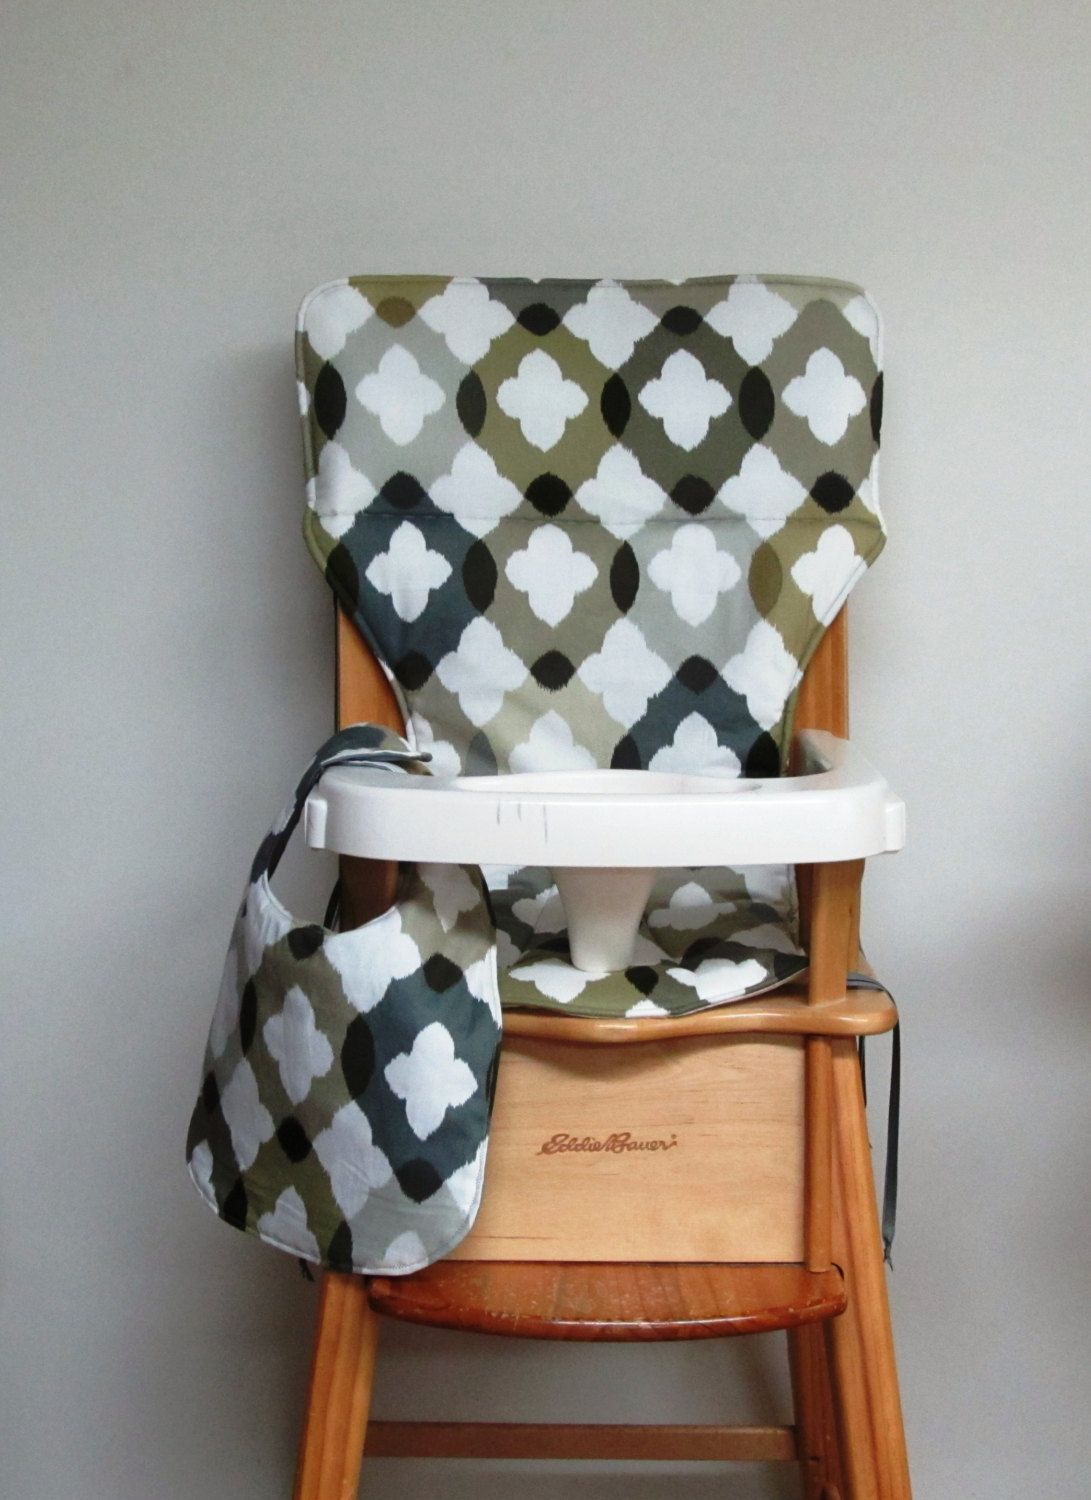 Eddie Bauer Chair Pad, High Chair Cover, Jenny Lind Chair Cover, Baby  Feeding Chair, Baby Accessory, Child Care, Shadows With Matching Bib By ...